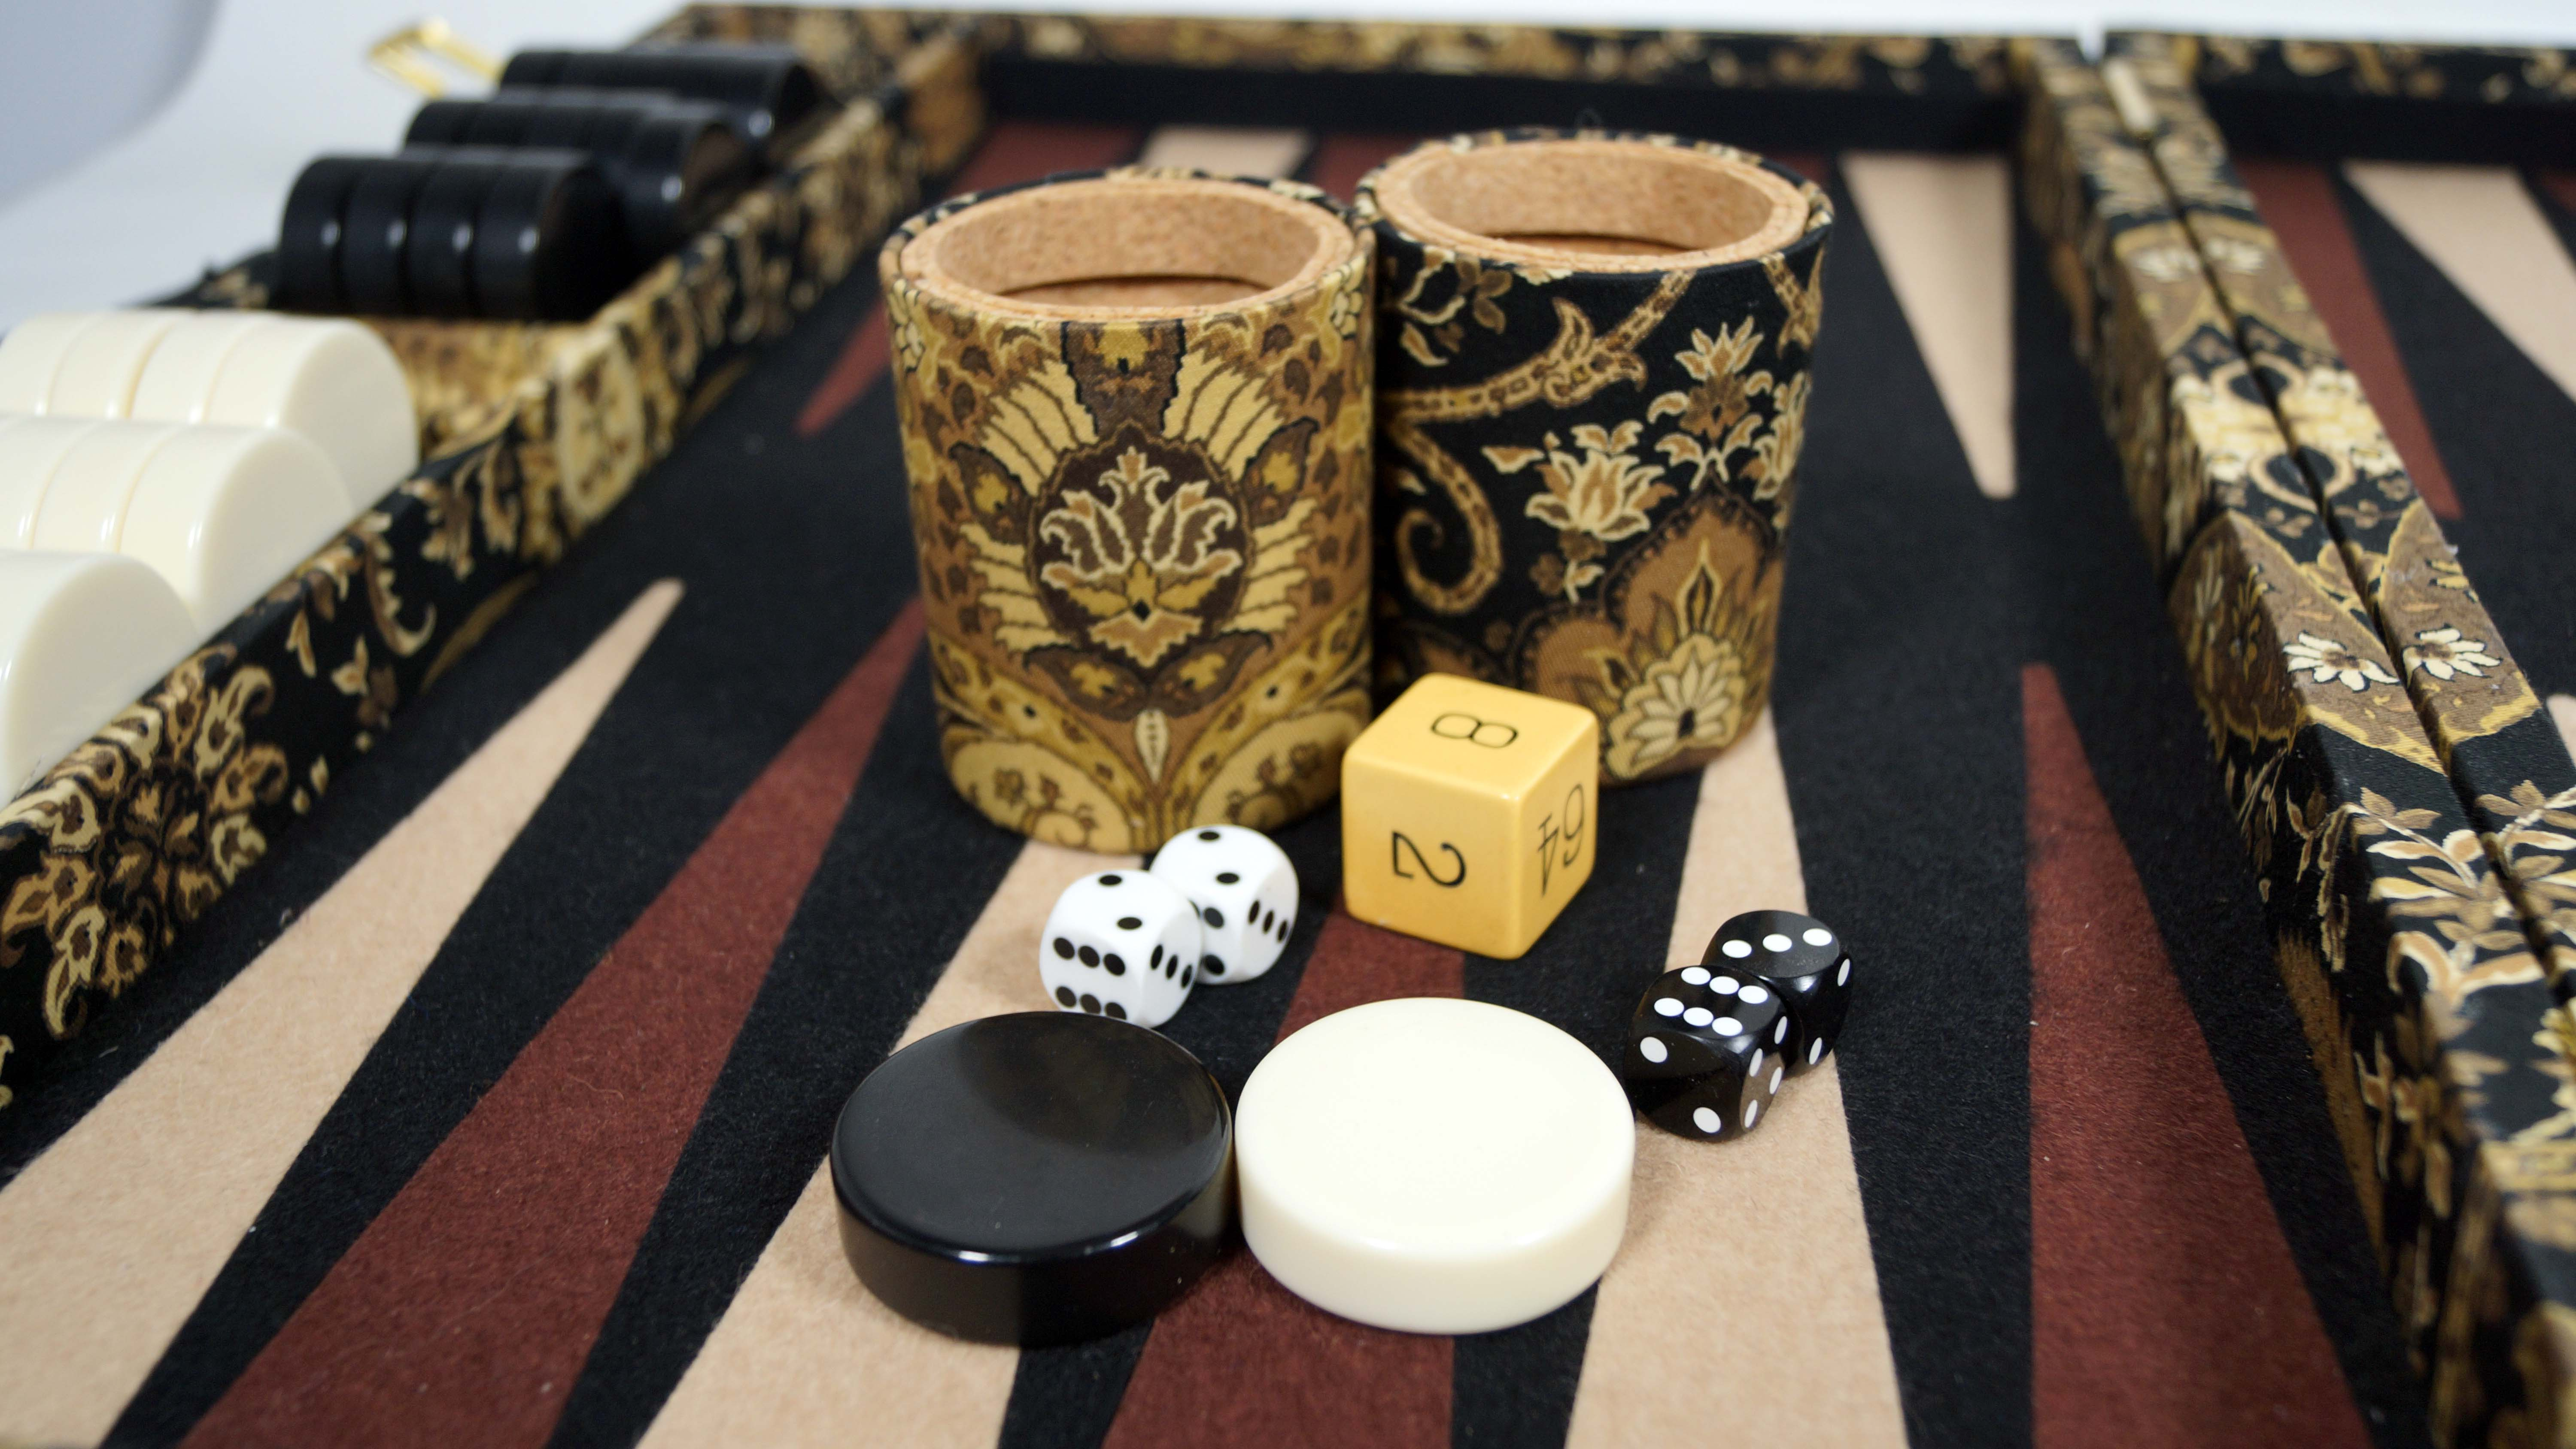 Unique dice shakers